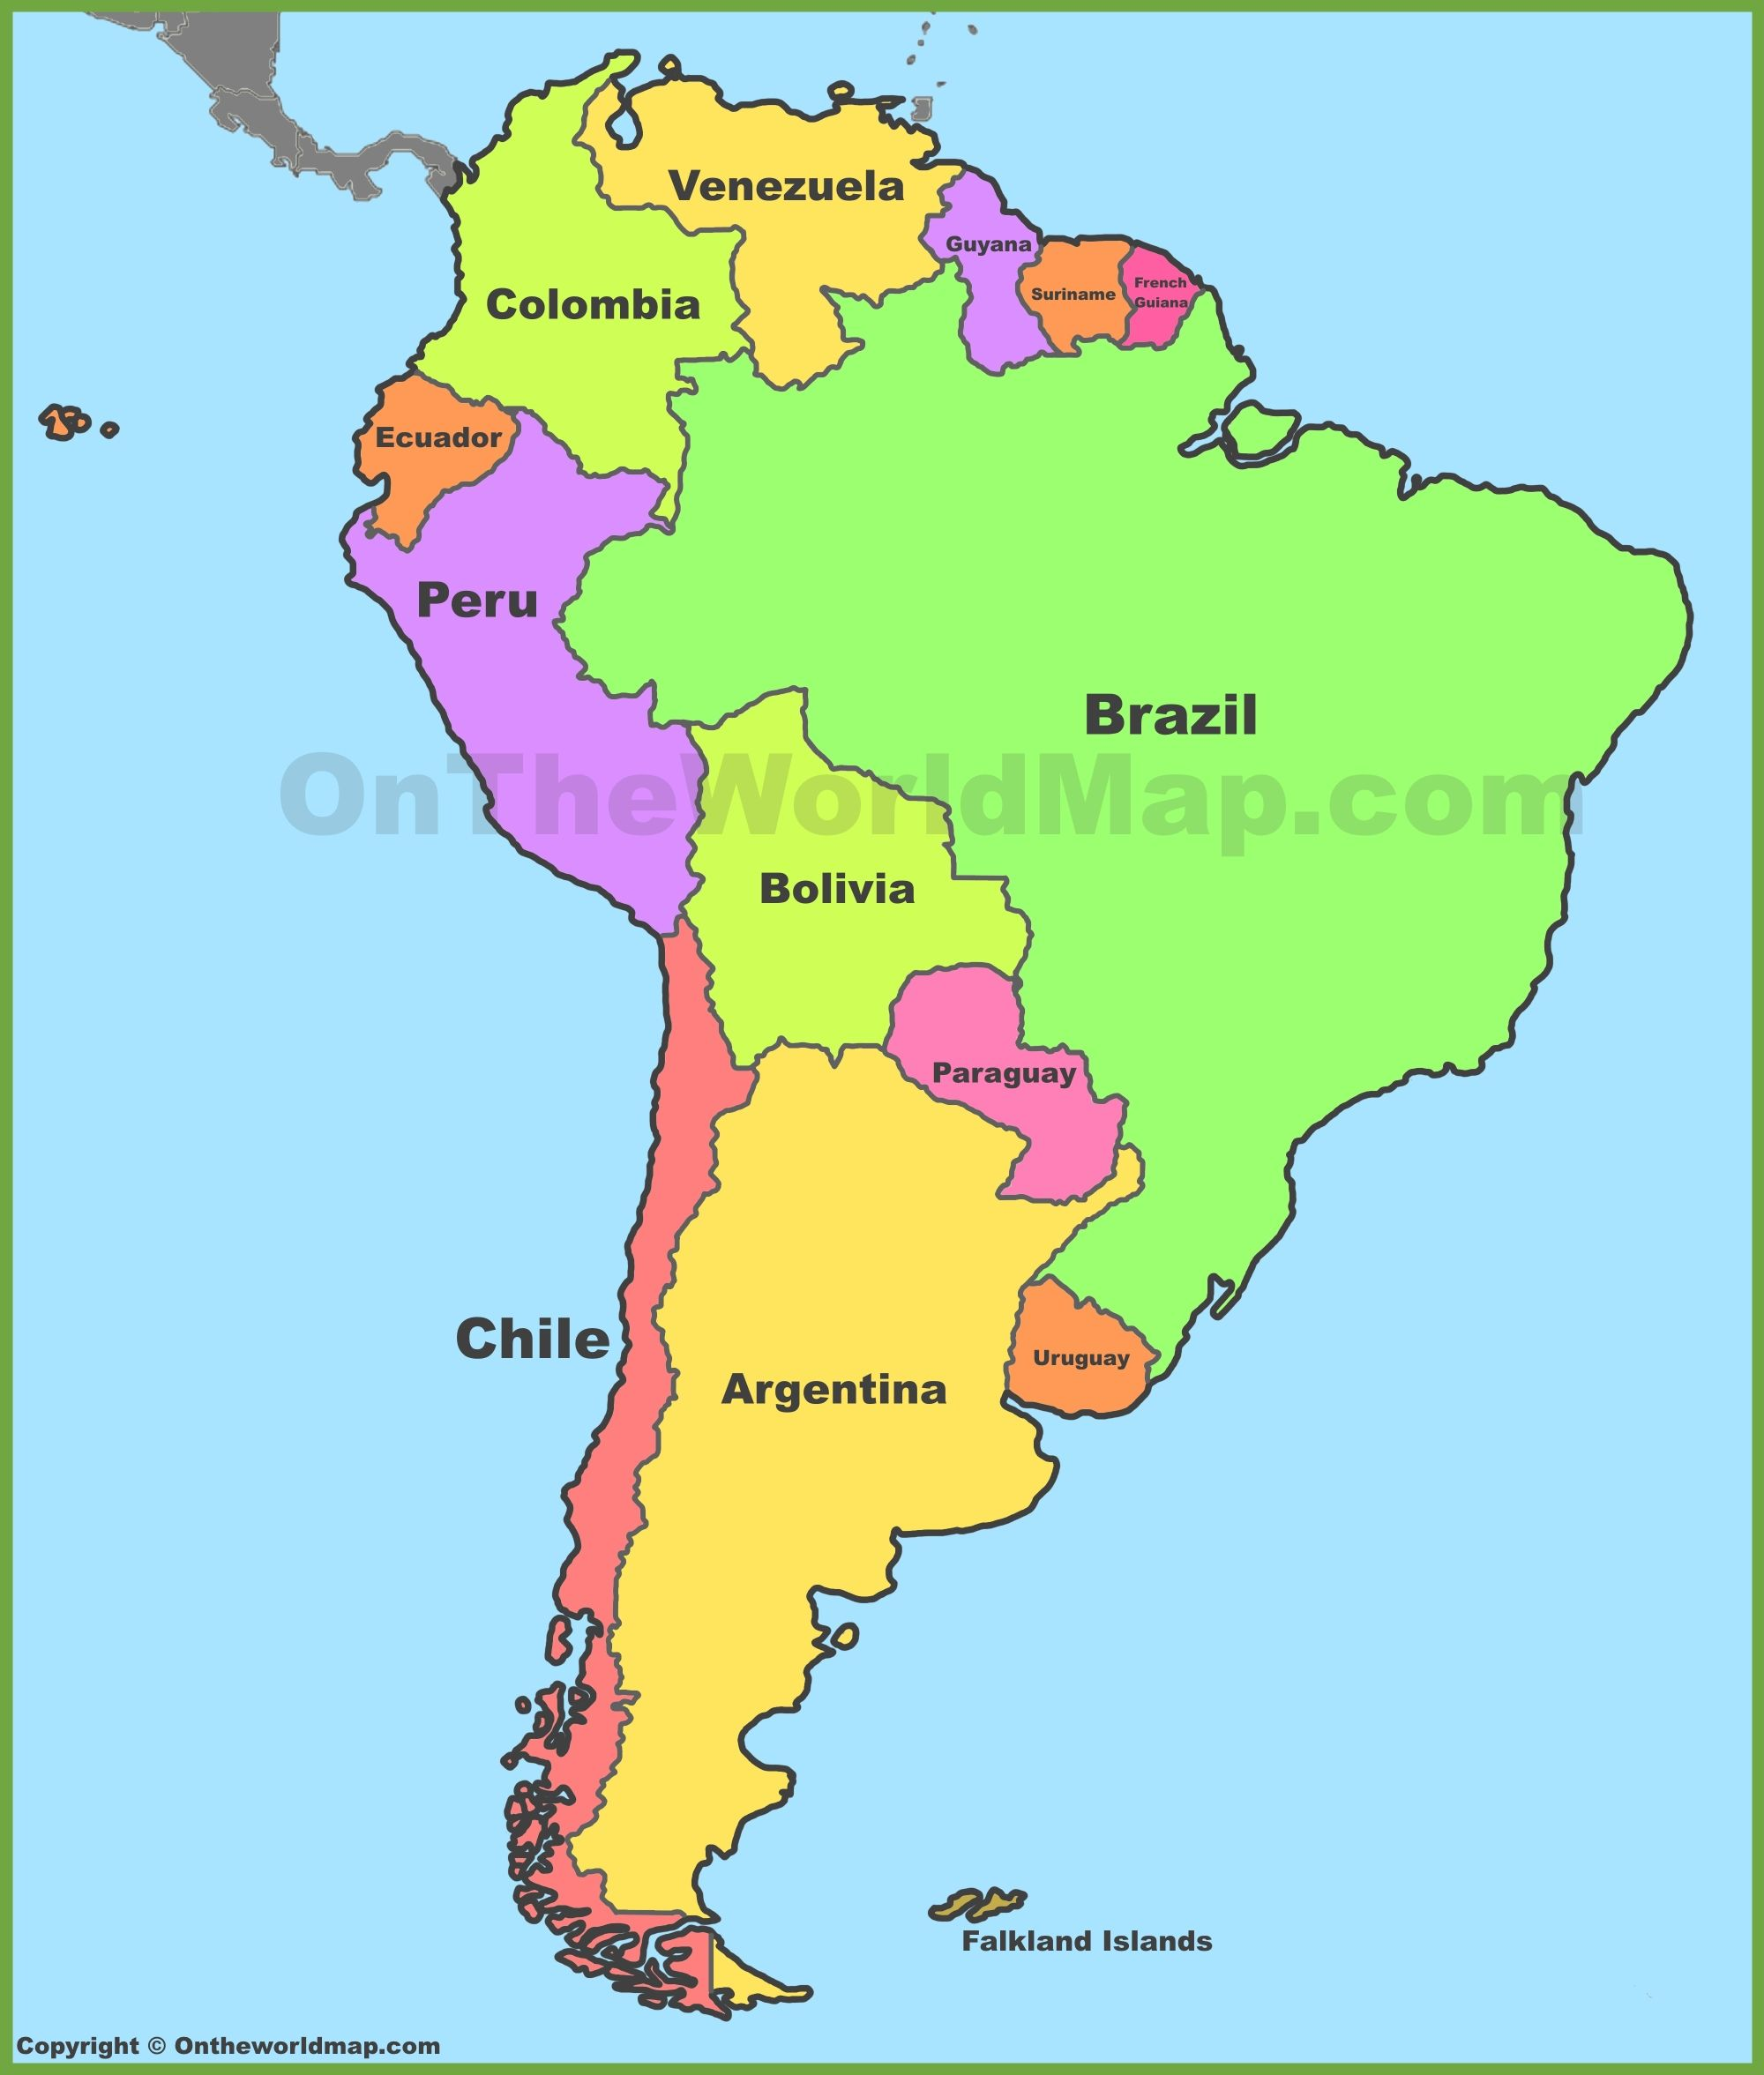 A Map Of South America Political map of South America | cool map | South america map